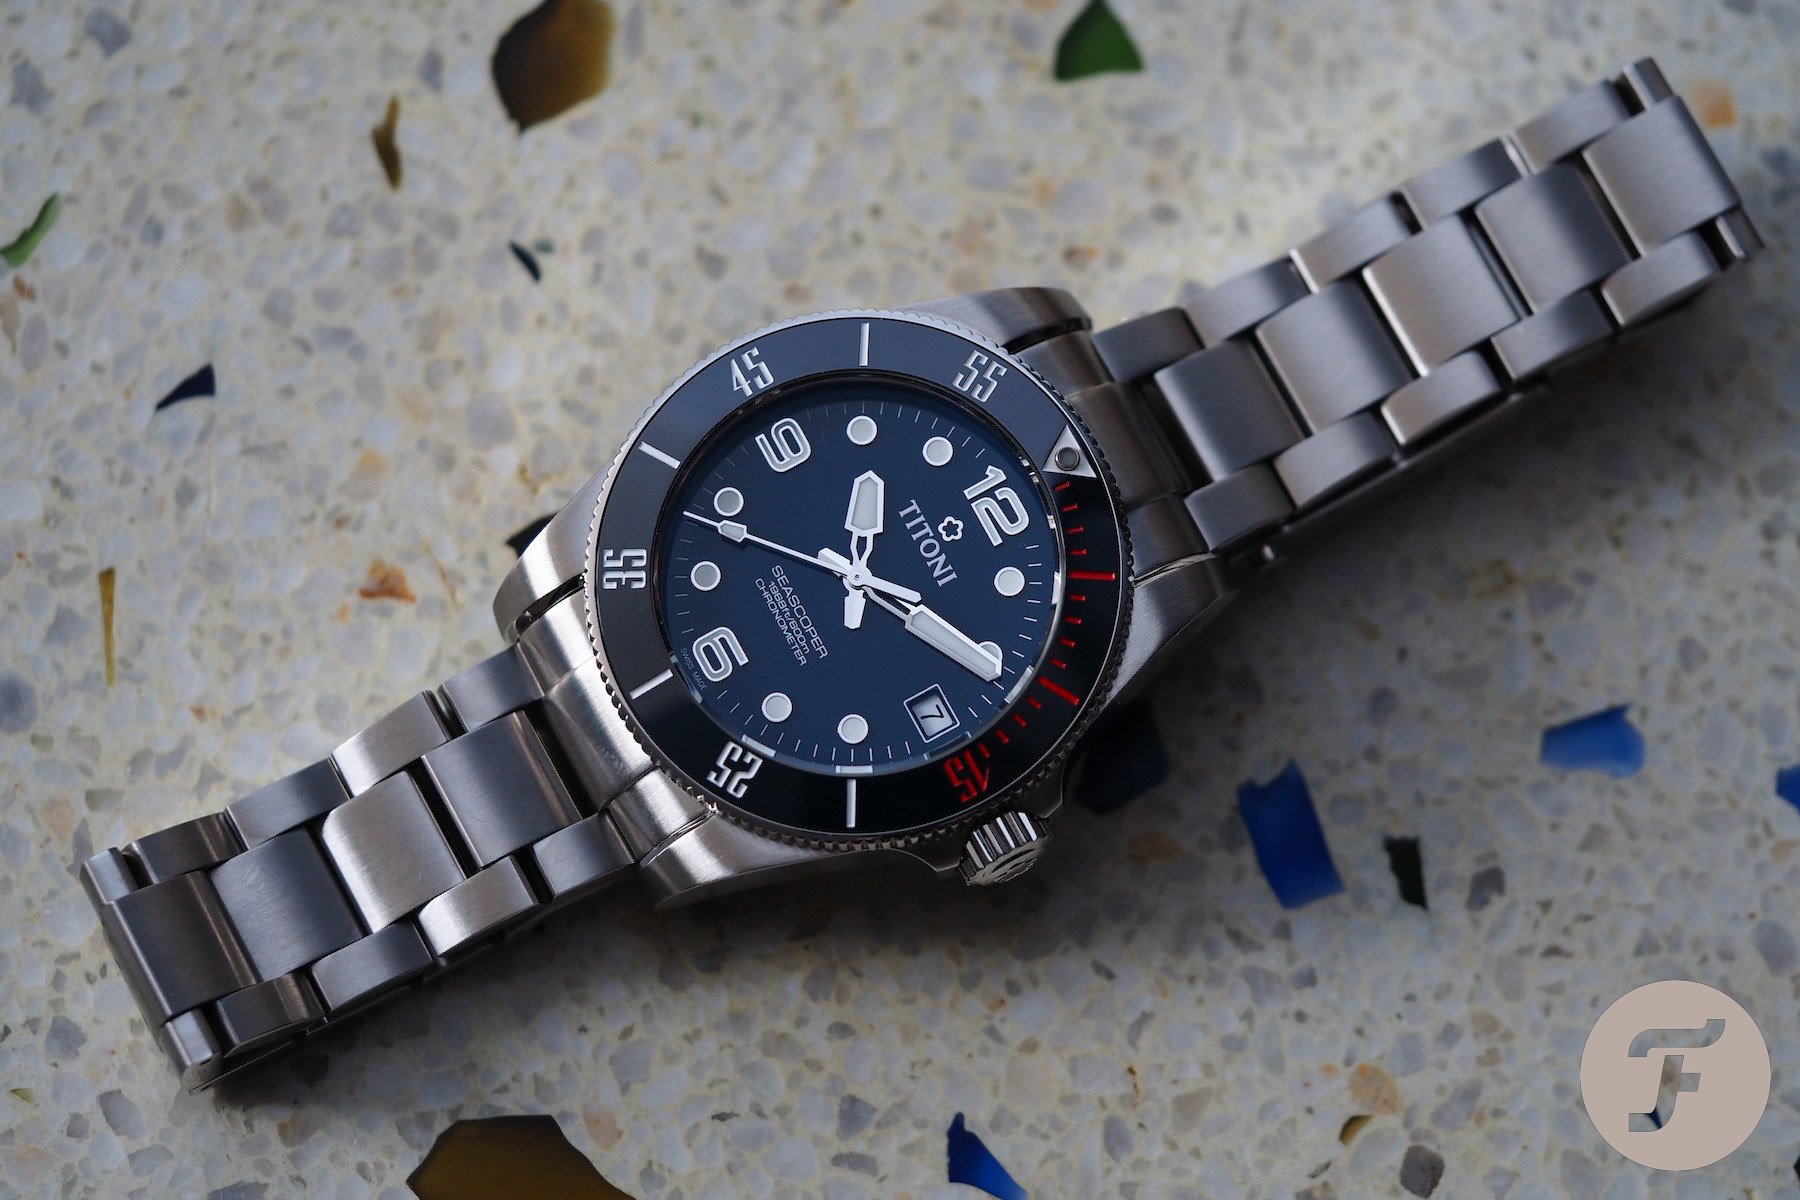 Titoni Seascoper Reference 83600 S-BE-255 Dive Watch Review